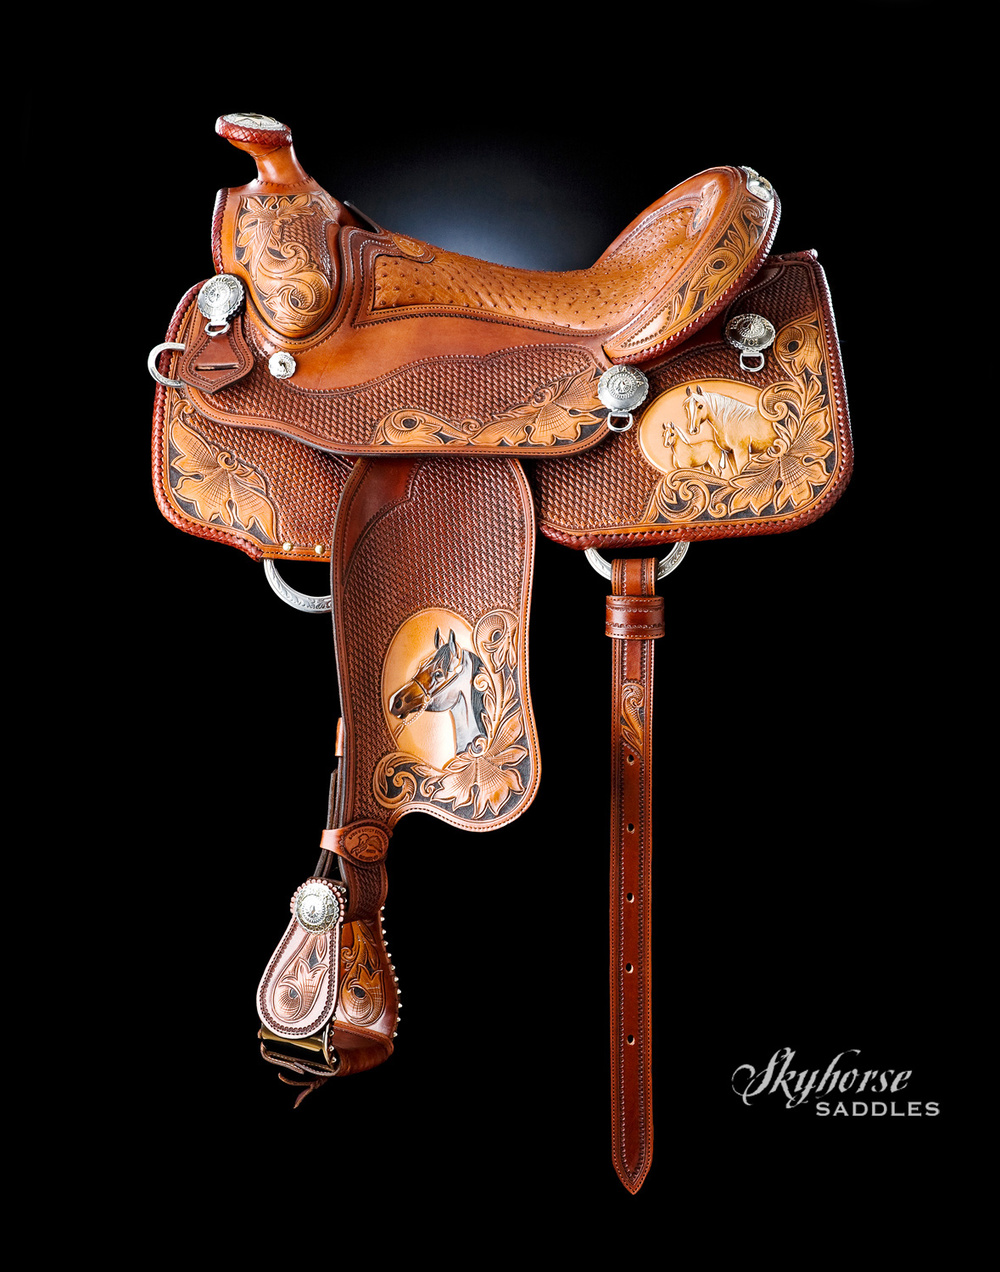 Double XX Show Saddle  Click a thumbnail for a slideshow.